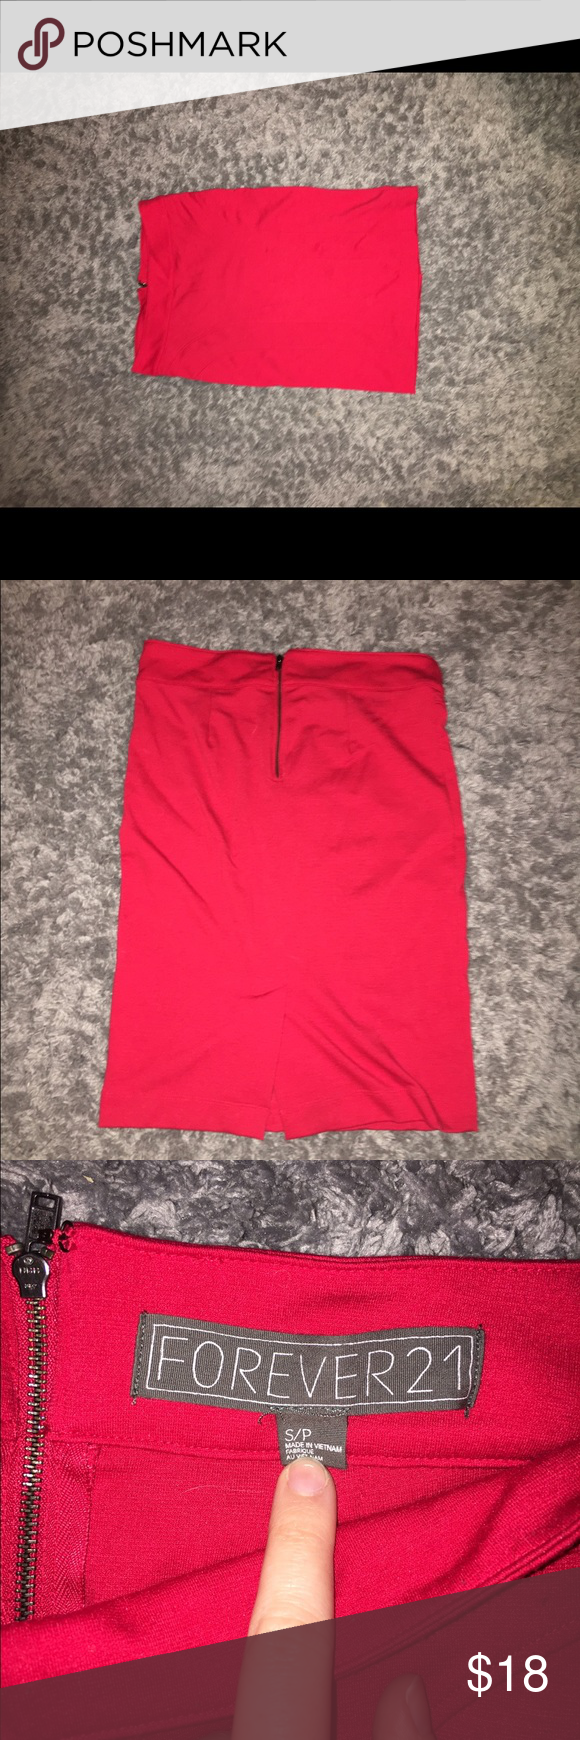 Red Forever 21 Pencil Skirt Peres pencil skirt perfect for any formal occasion. Comes just above the knees. Zips up in the back. Only worn a couple times. Forever 21 Skirts Pencil